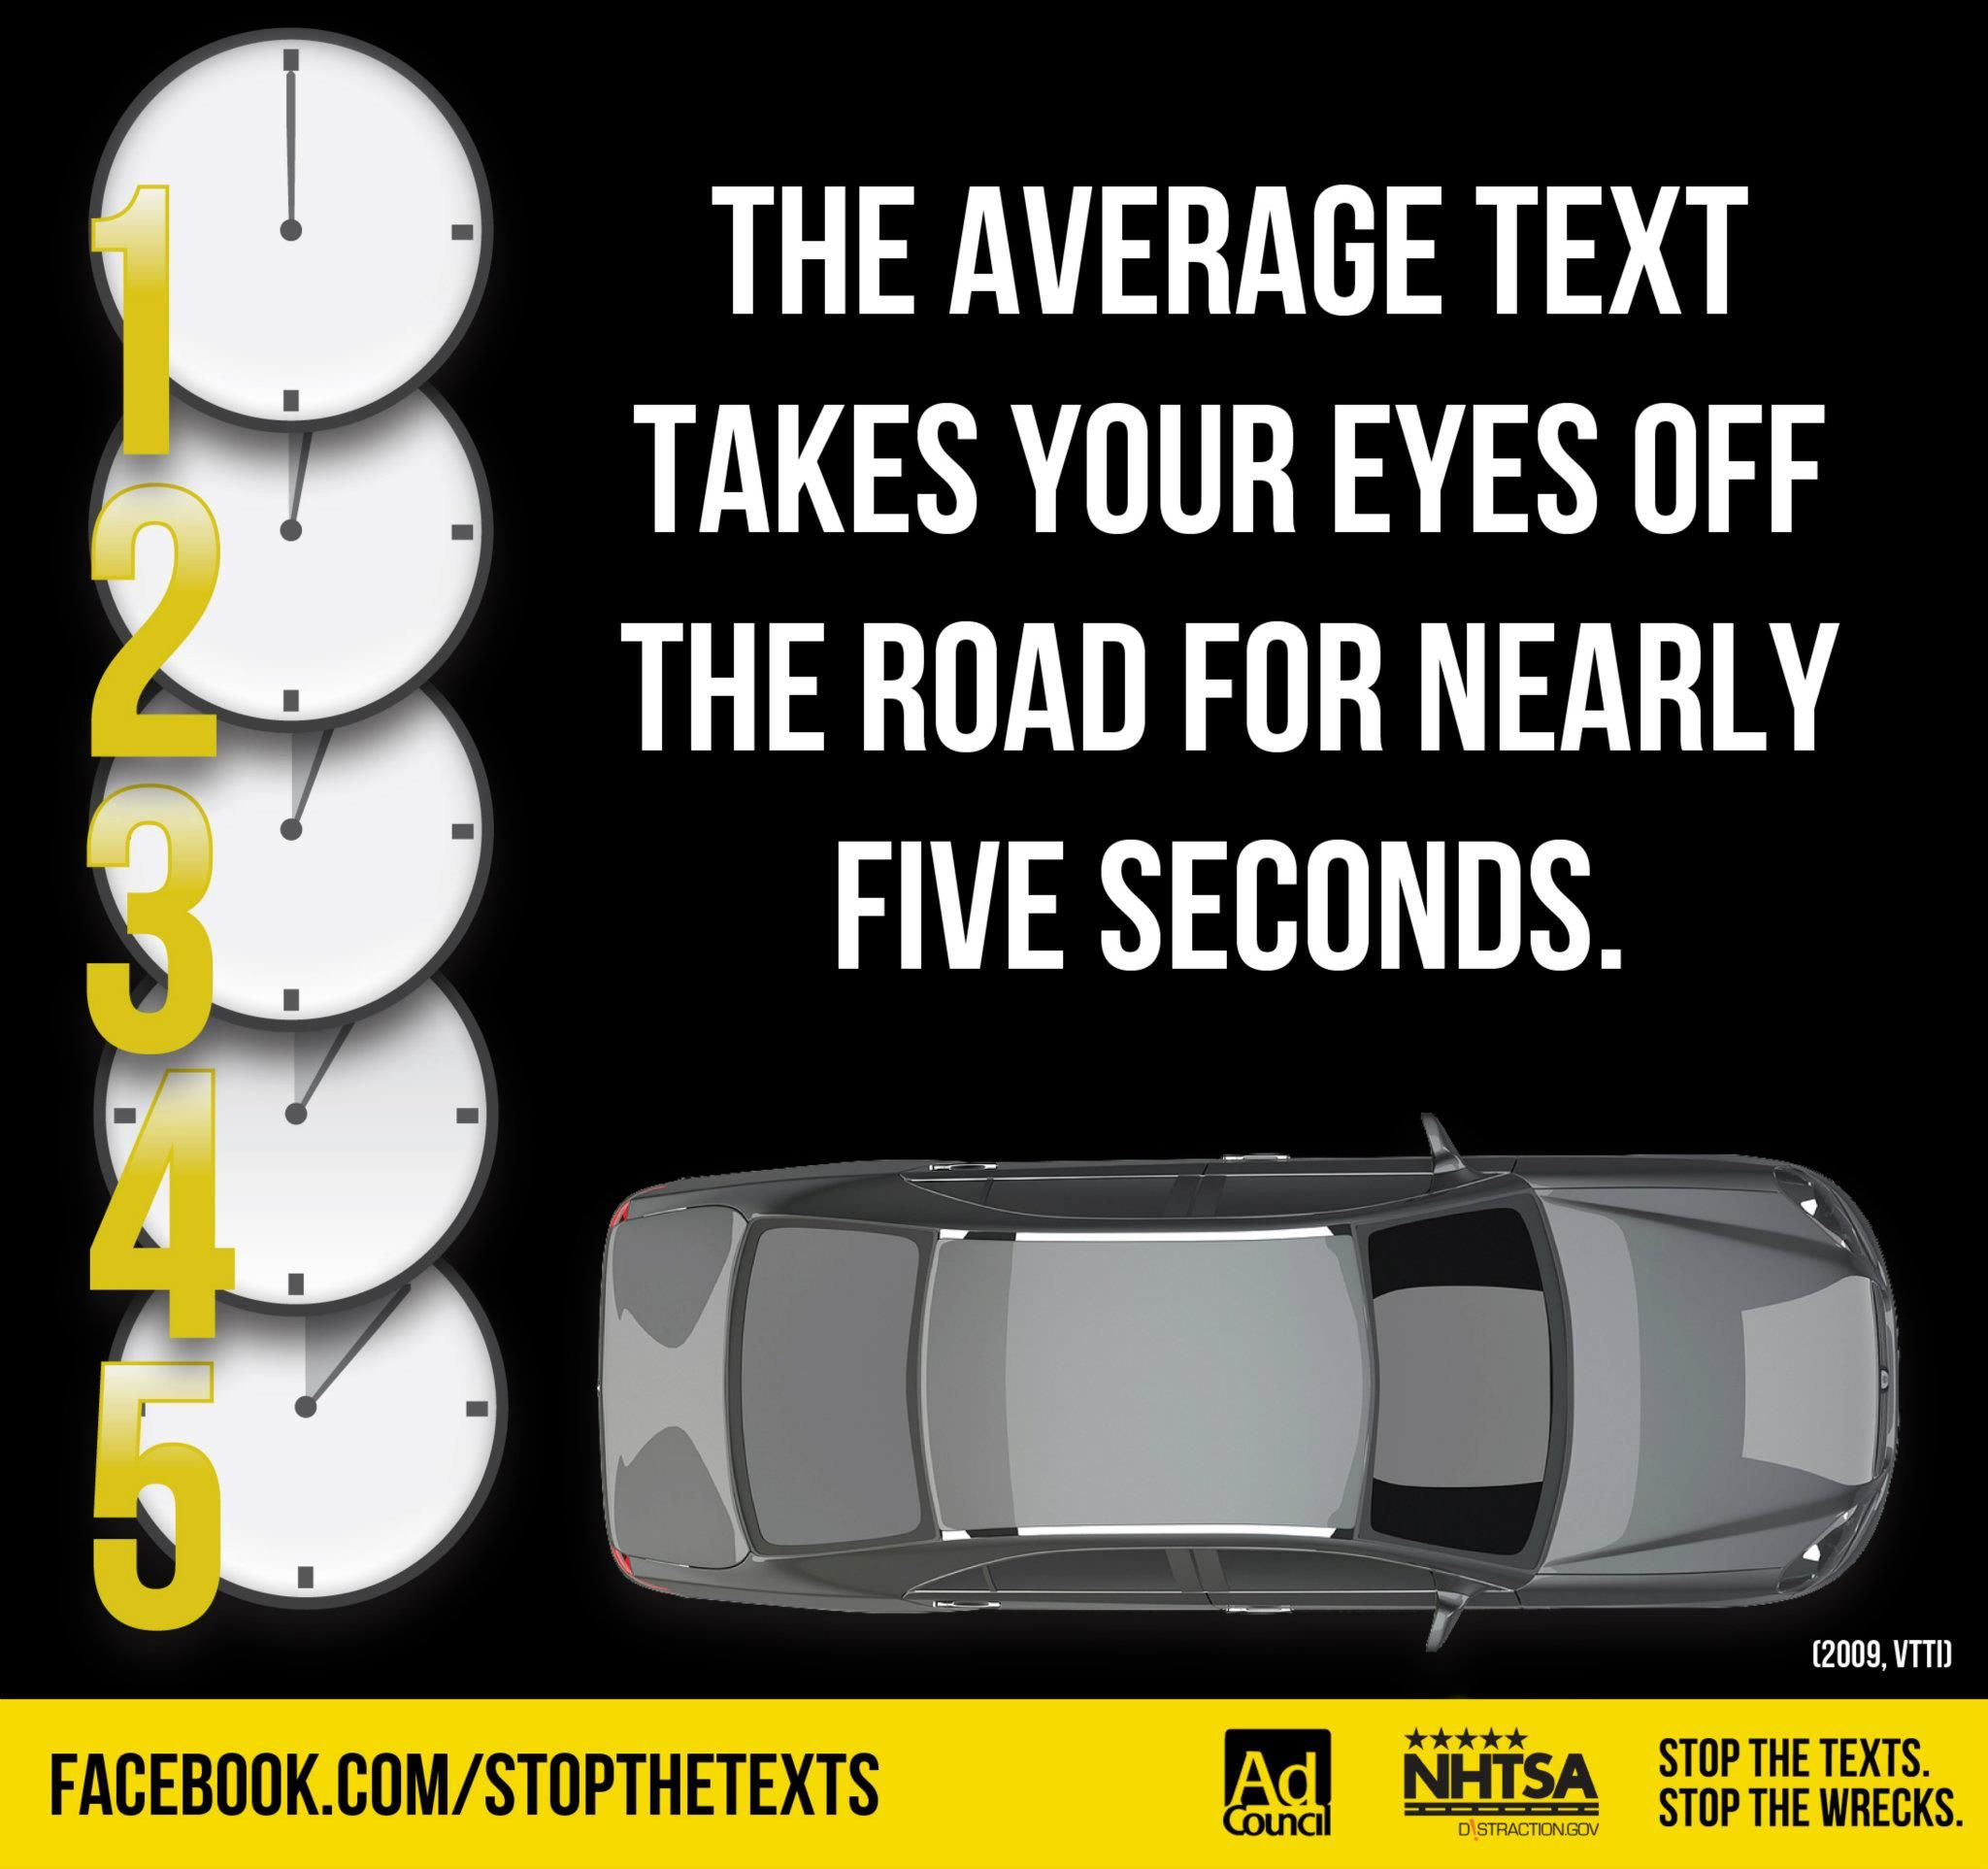 Texting And Driving Quotes The Average Text Takes Your Eyes Off The Road For Nearly Five